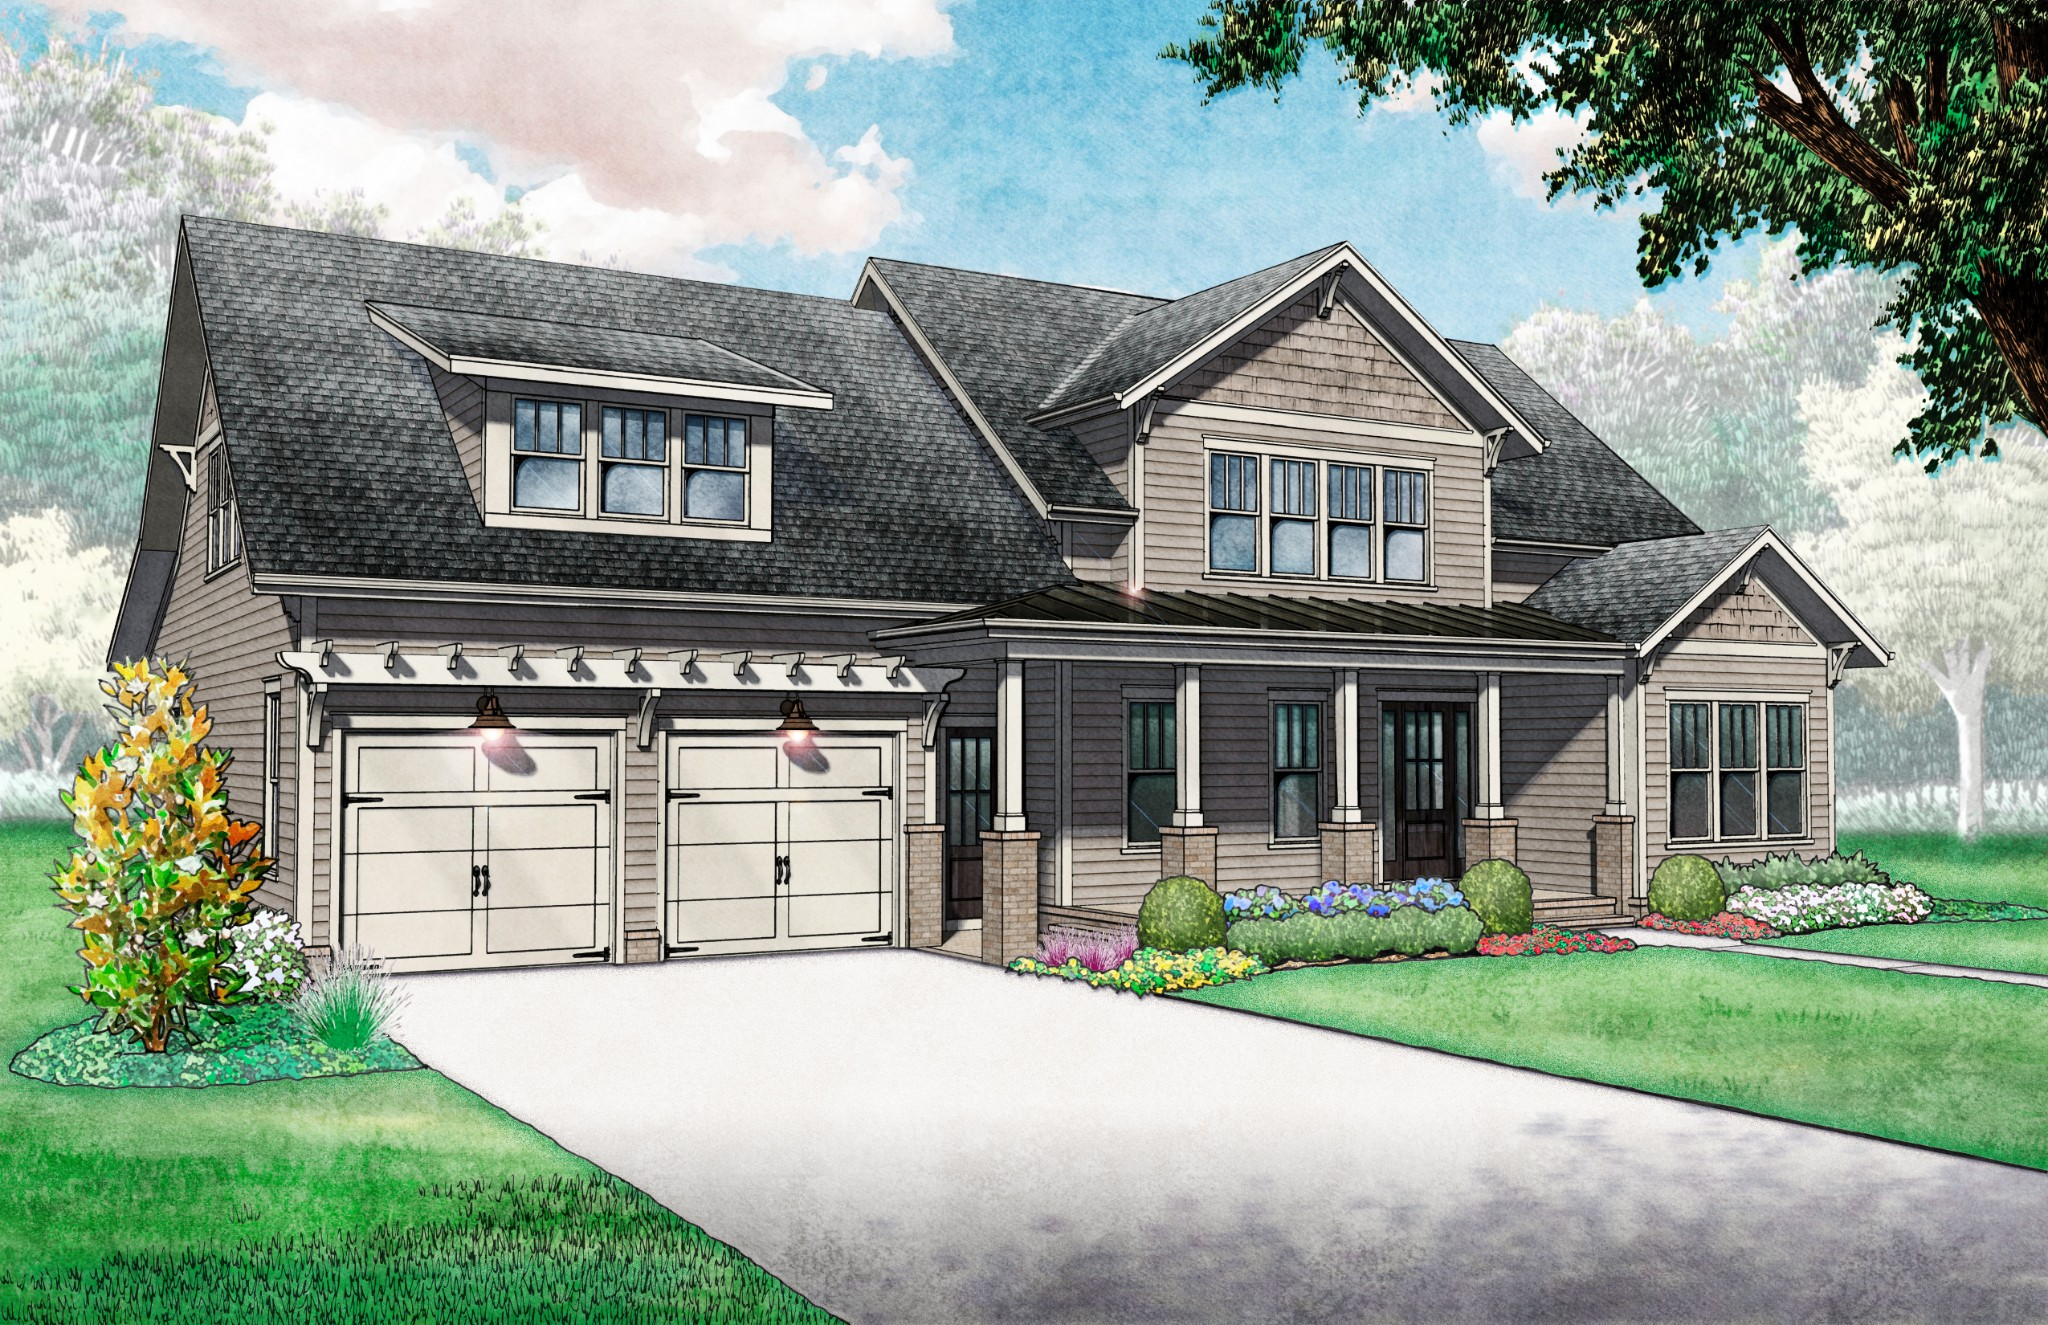 Ford Classic Homes presents a 4 bdrm, 4 bath & 2 pb home in The Grove. Main level primary suite offers vaulted tray ceilings w/beams, spacious master bath & 2 walk-in-closets, w 2nd ensuites guest room & vaulted ceiling Great Room w/ beams & fireplace. 2nd floor has two ensuites bedrooms w/ walk-in-closet, bonus room and finished flex room /5th bedroom. Covered back porch w/ gas starting/wood burning fireplace, all within walking distance of Bridge Bar, swimming pool & tennis/pickle-ball courts.